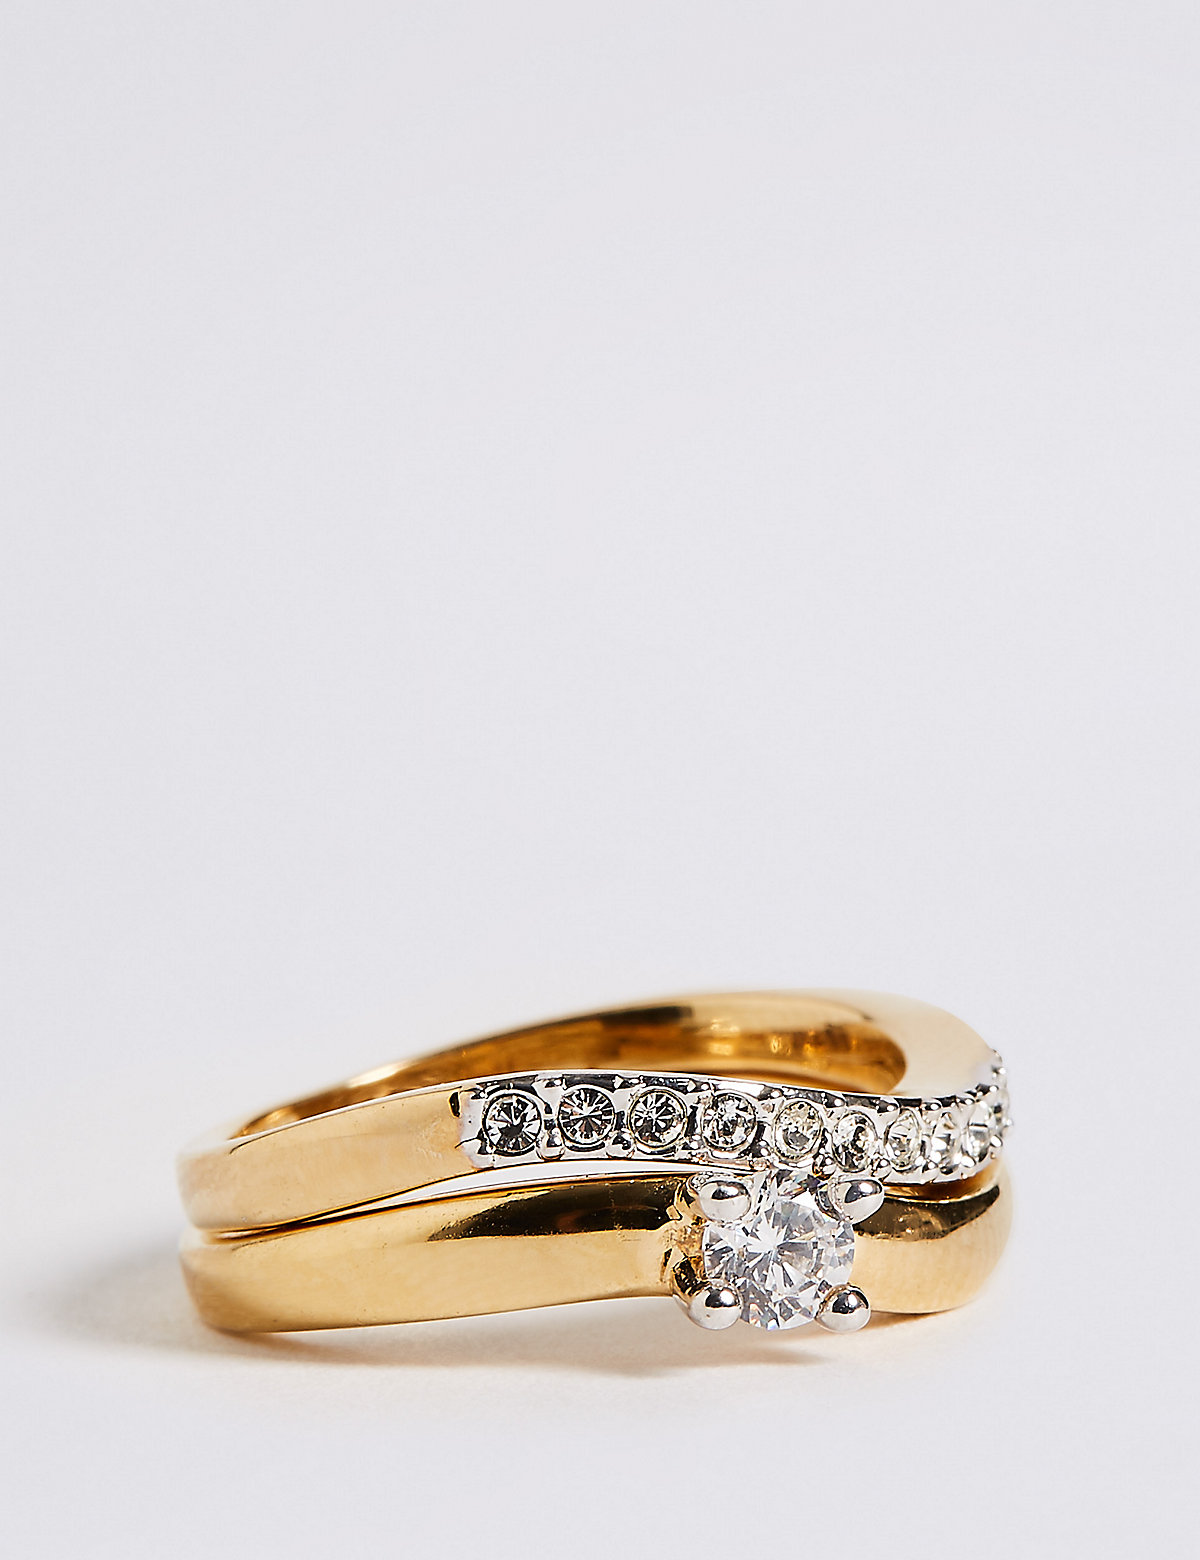 buy cheap gold wedding rings compare s jewellery